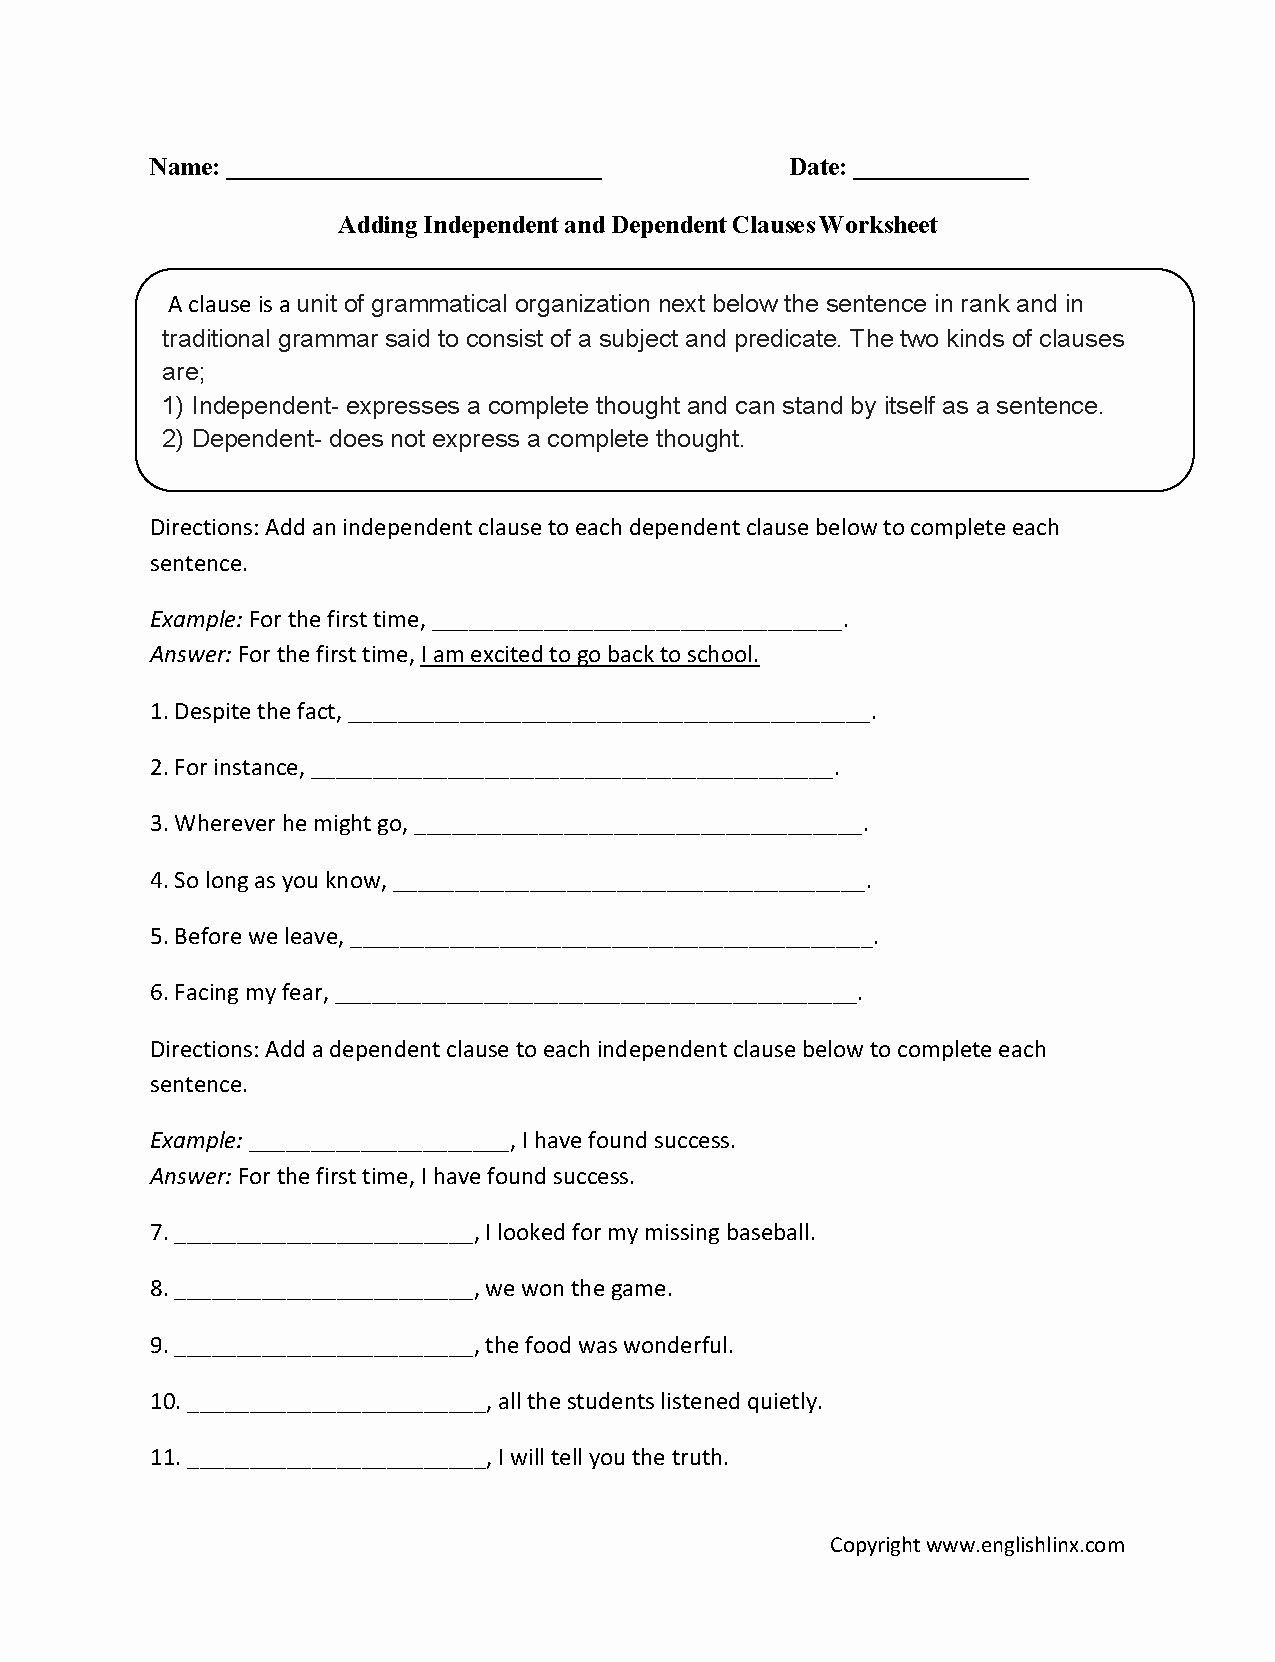 Primememorable 5th Grade English Worksheets With Images